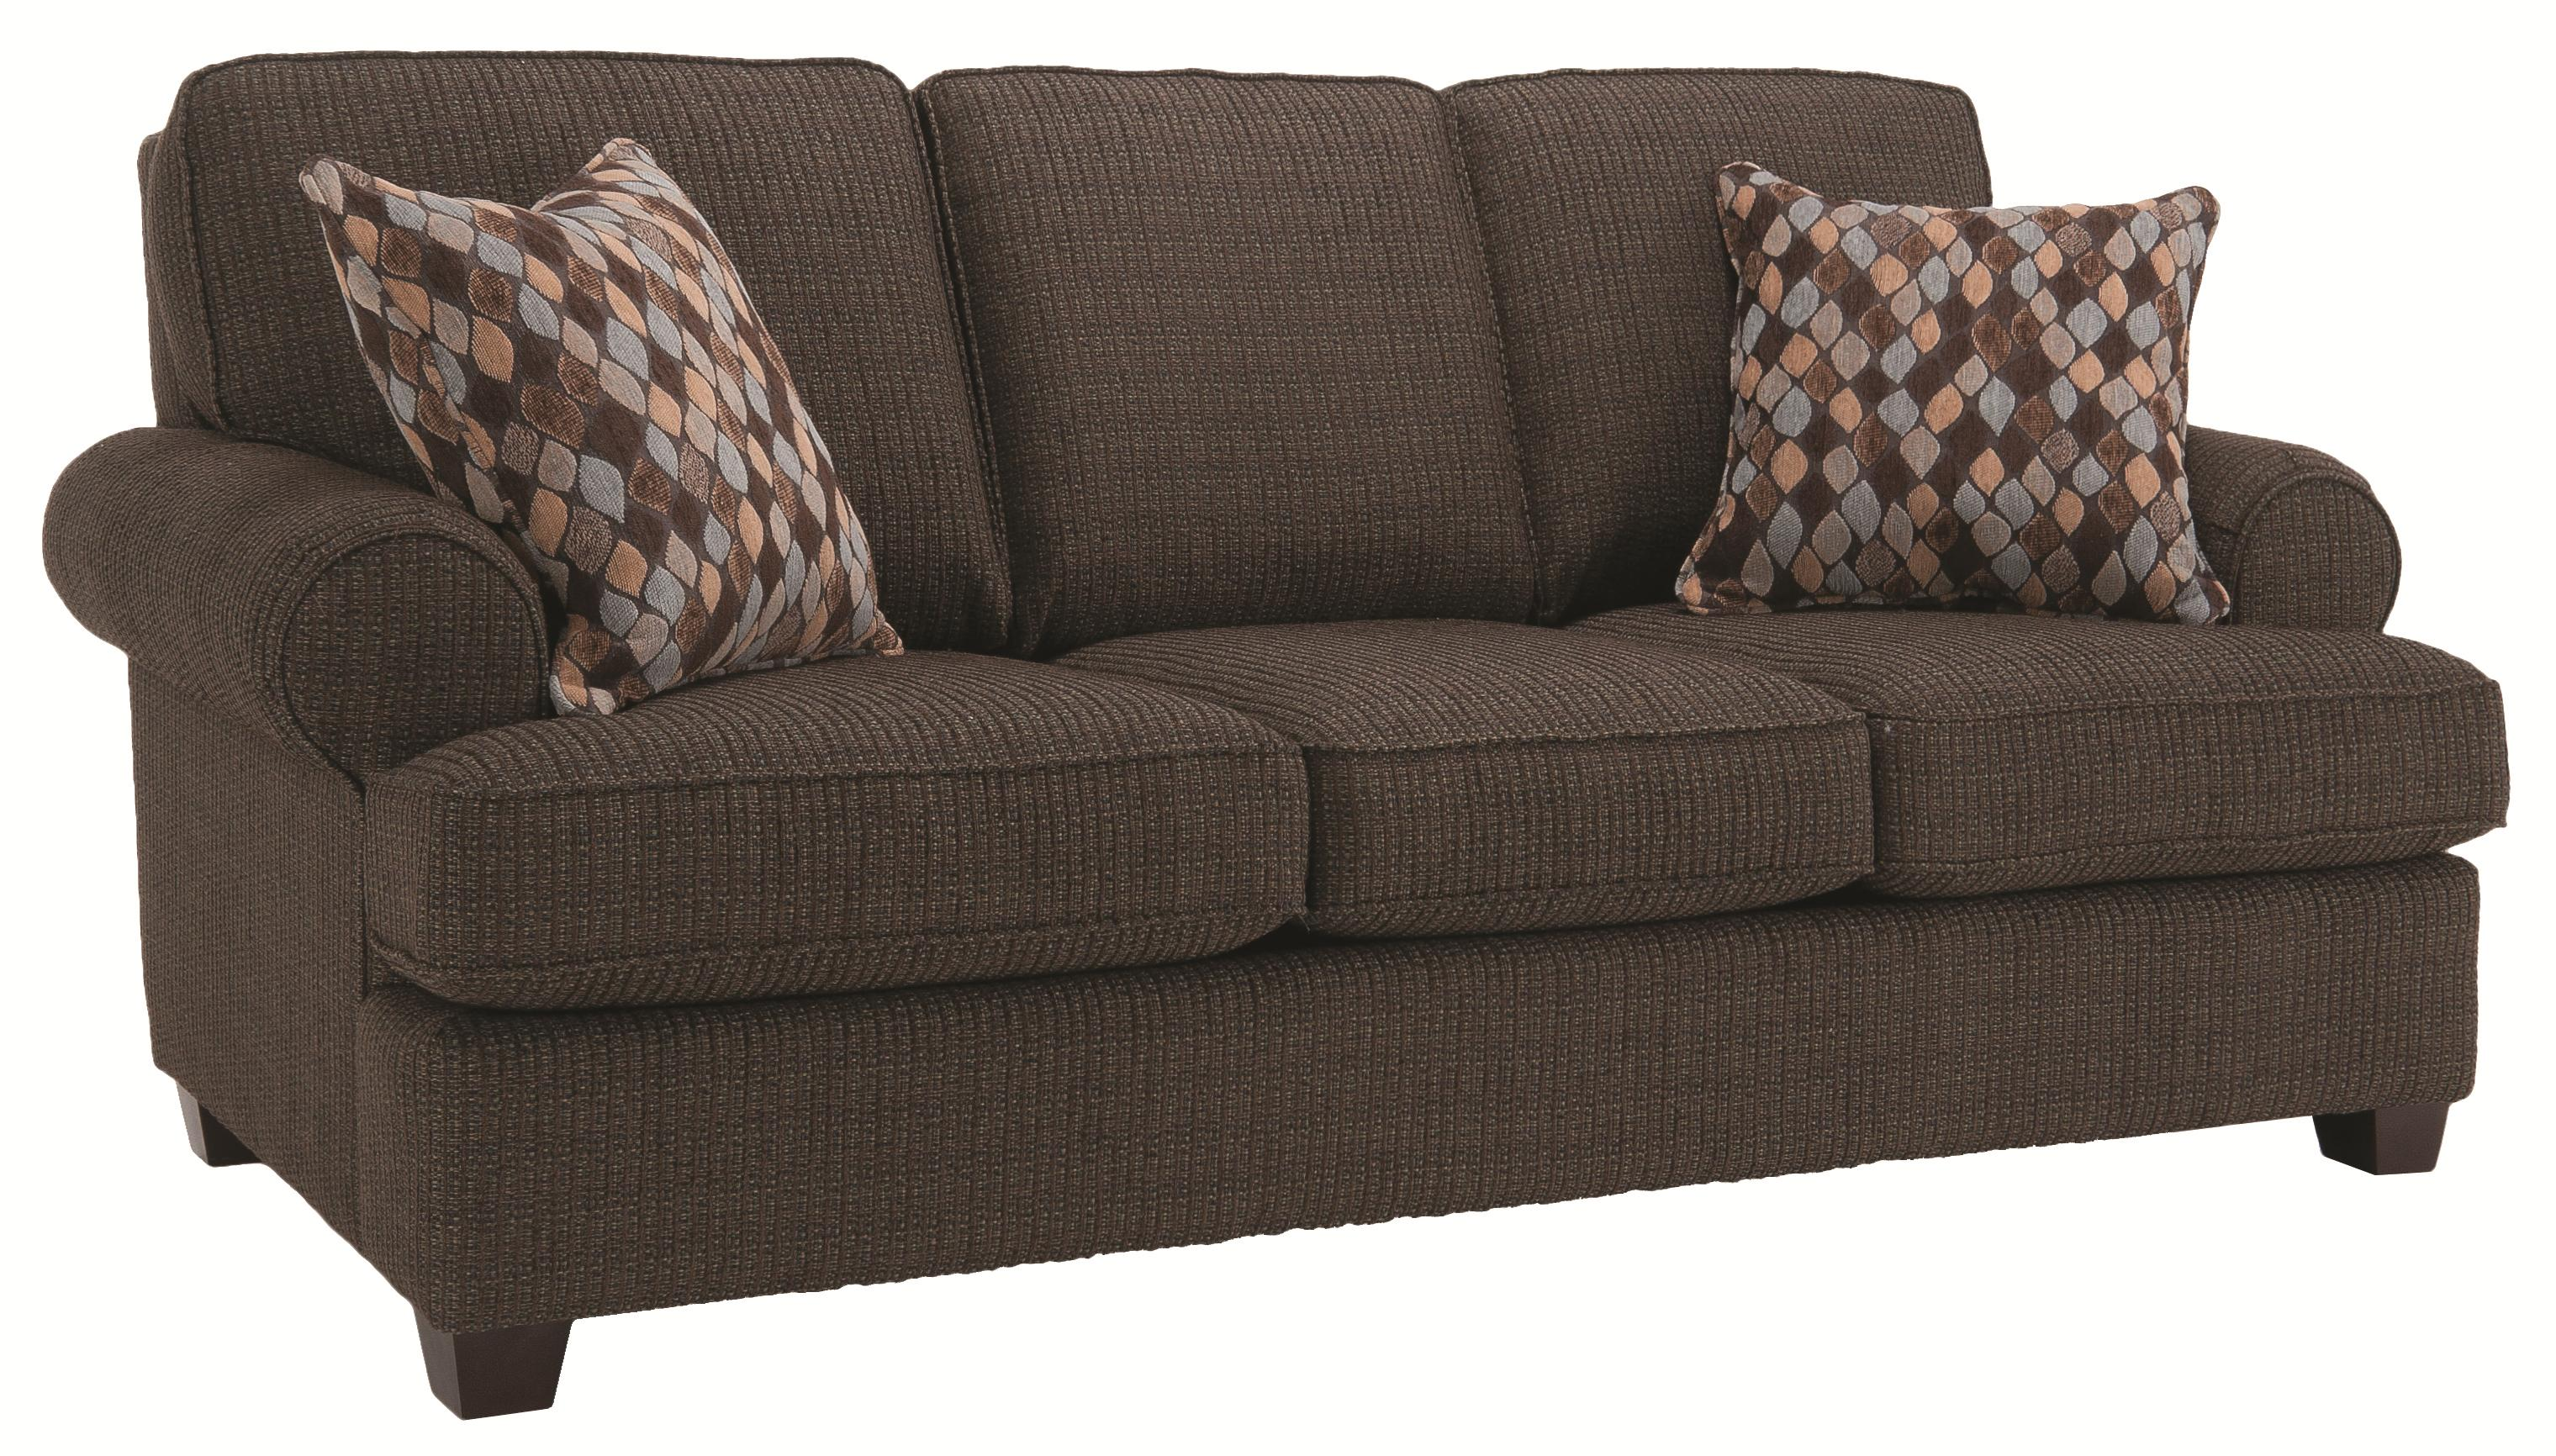 2285  Sofa by Decor-Rest at Rooms for Less